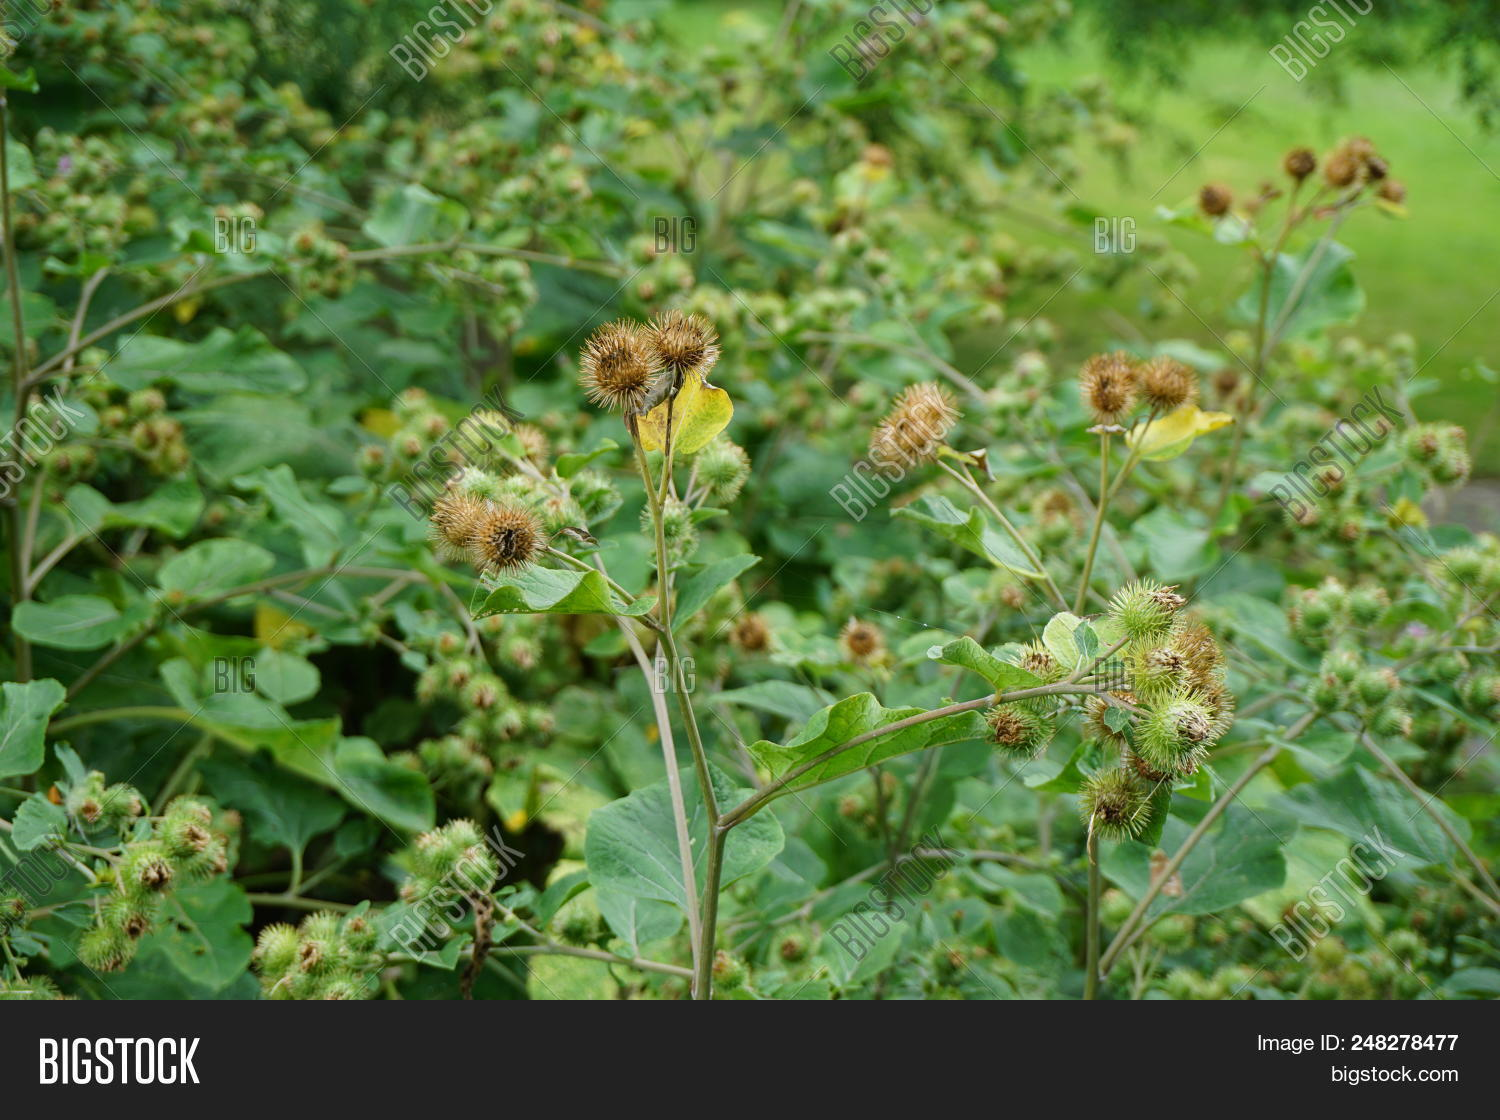 🔥 Burrs Develop On A Thick Stand Of Greater Burdock Plants